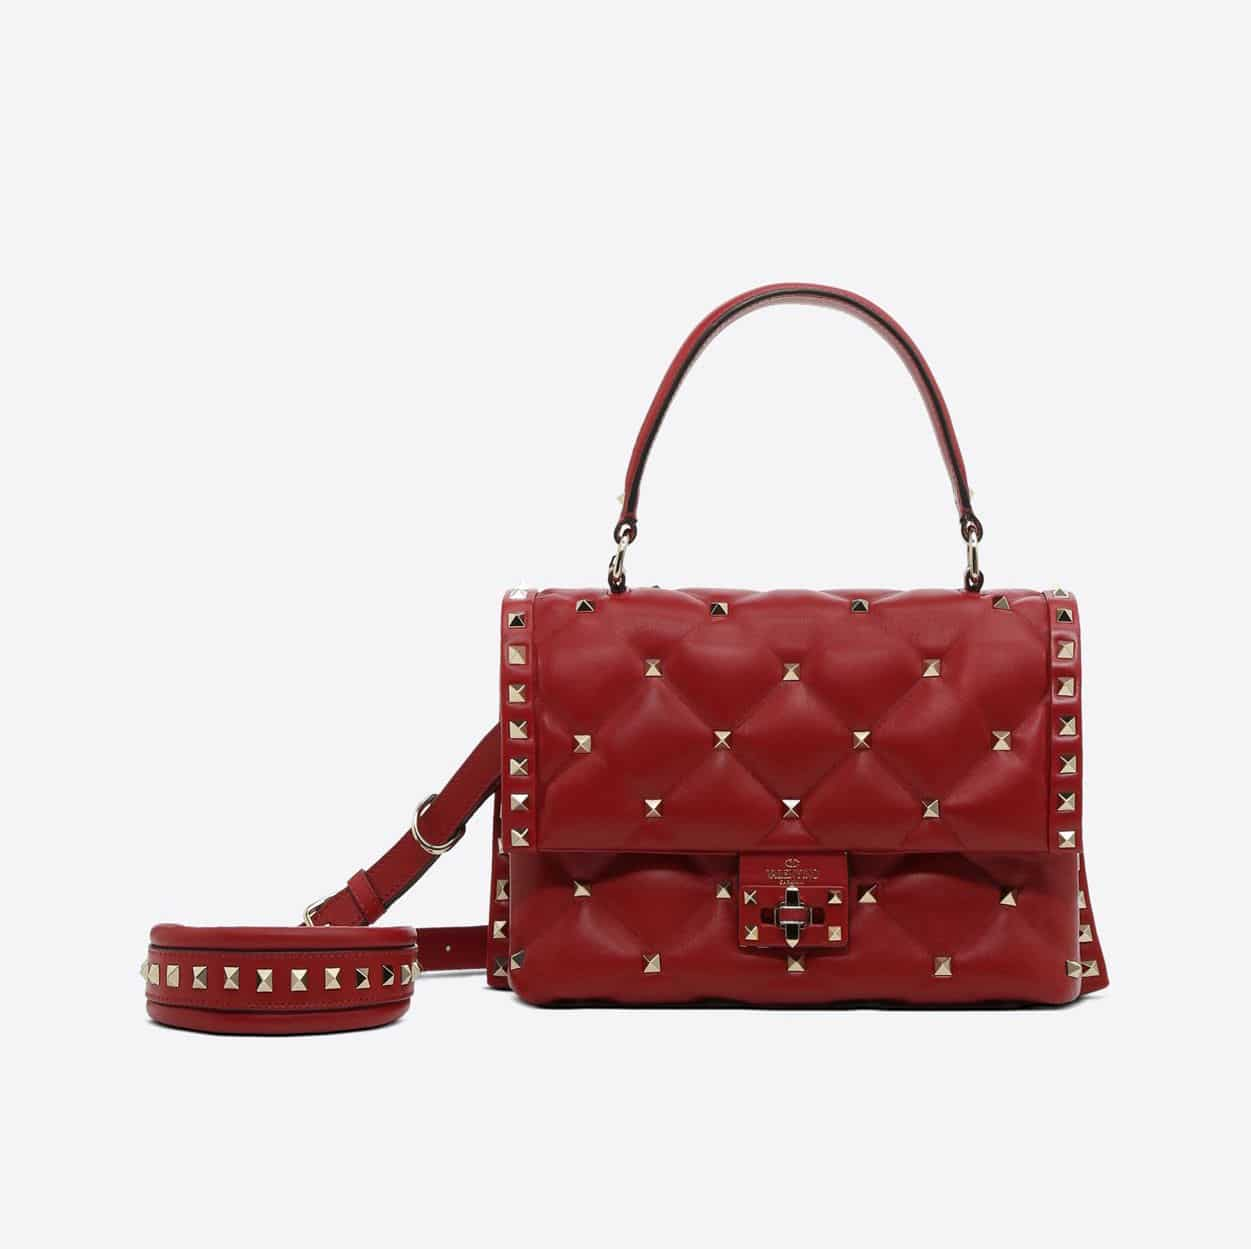 Valentino Spring Summer 2018 Bag Collection With The New Candystud